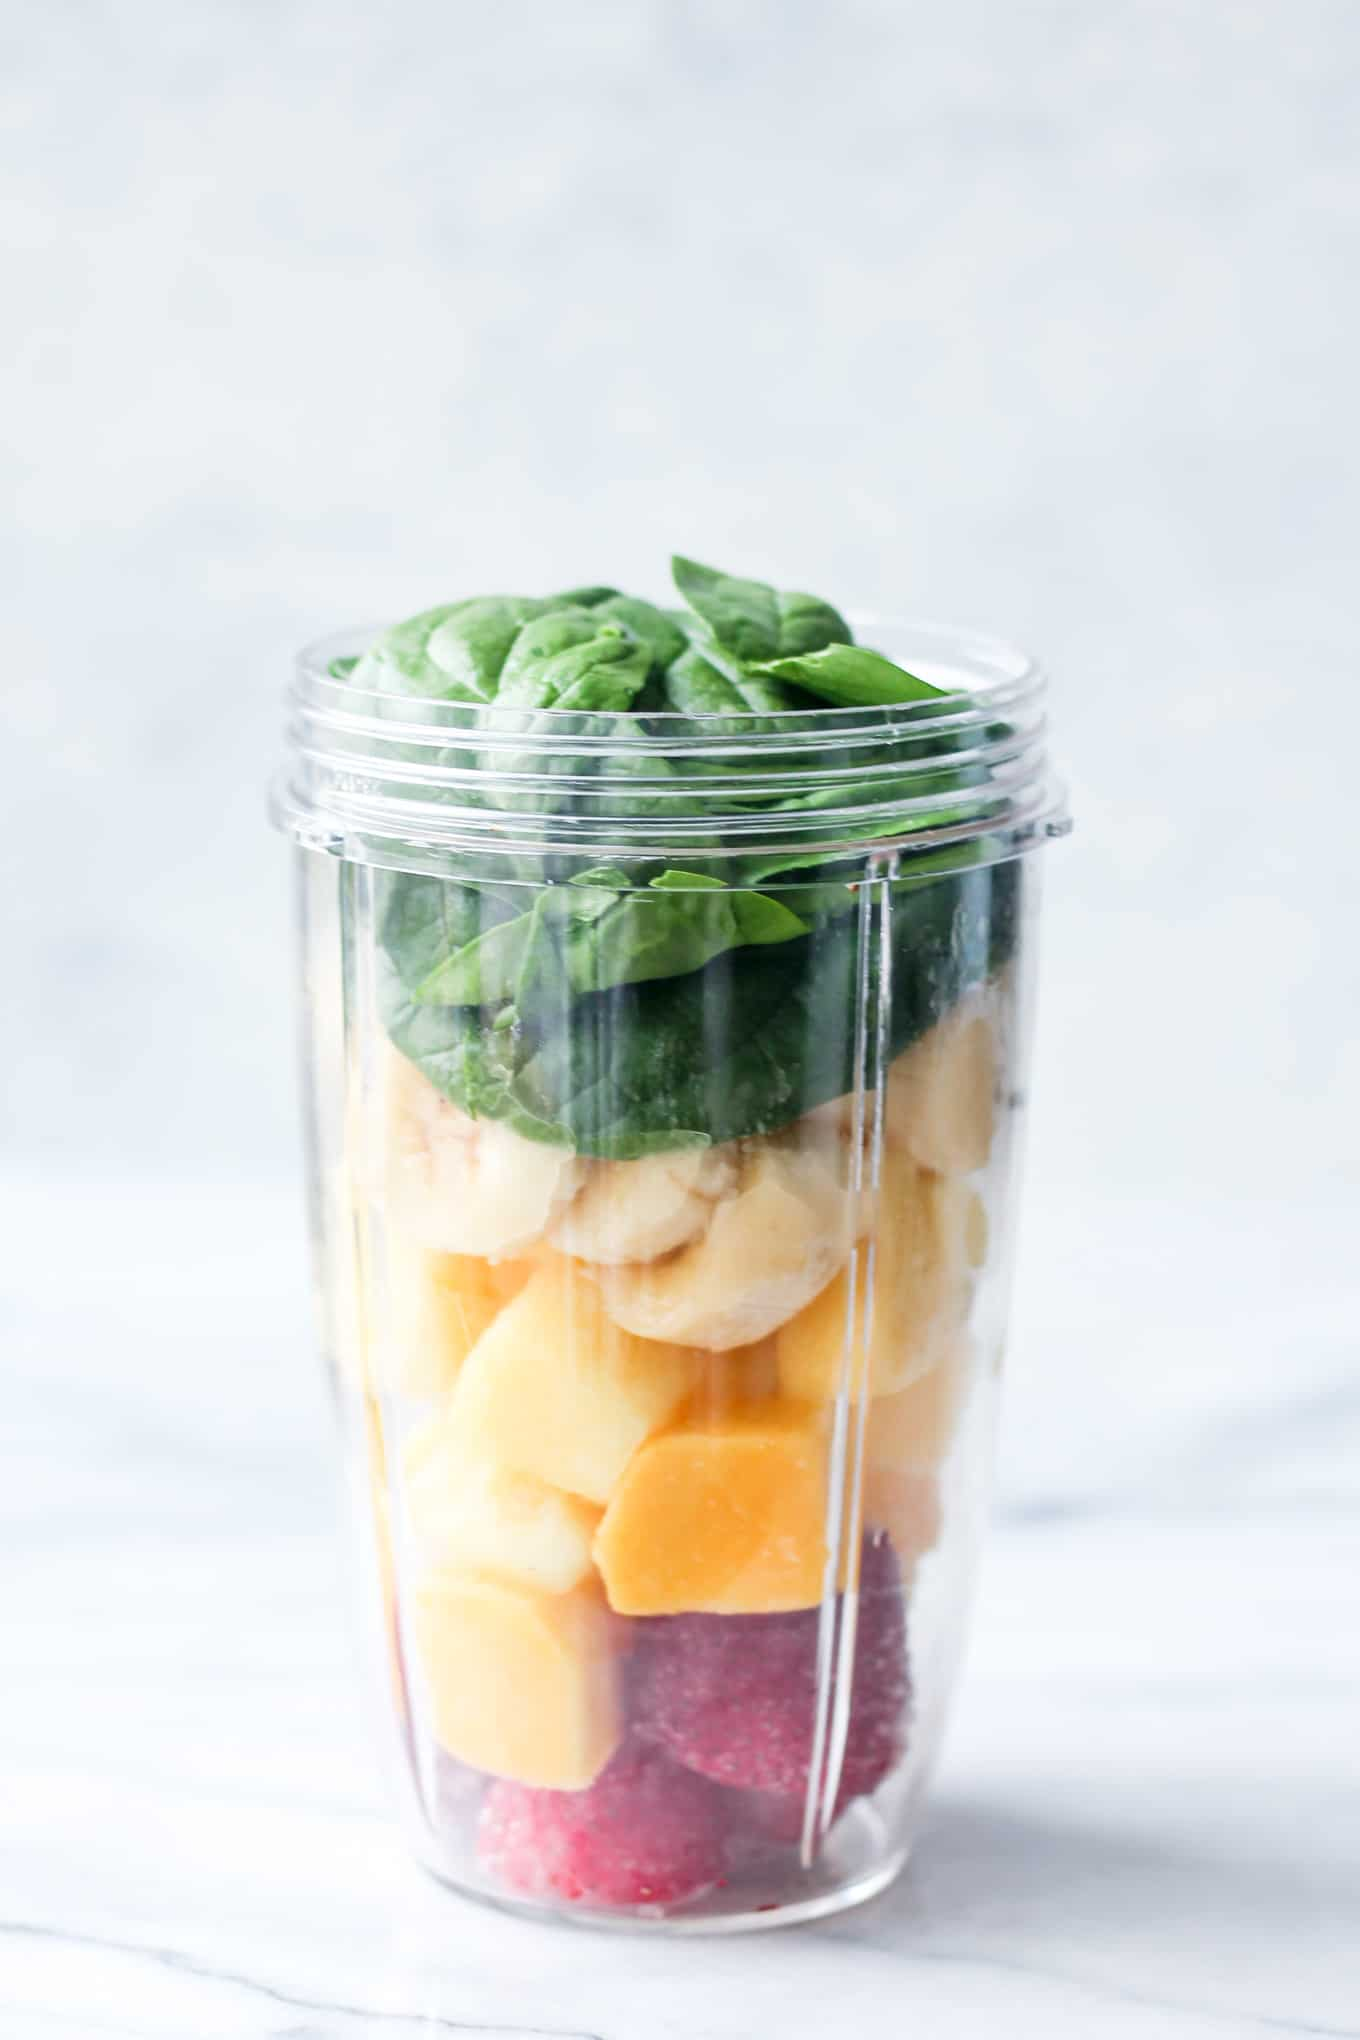 Strawberries,  mango, banana, pineapple chunks, and spinach packed in a blender before blending.